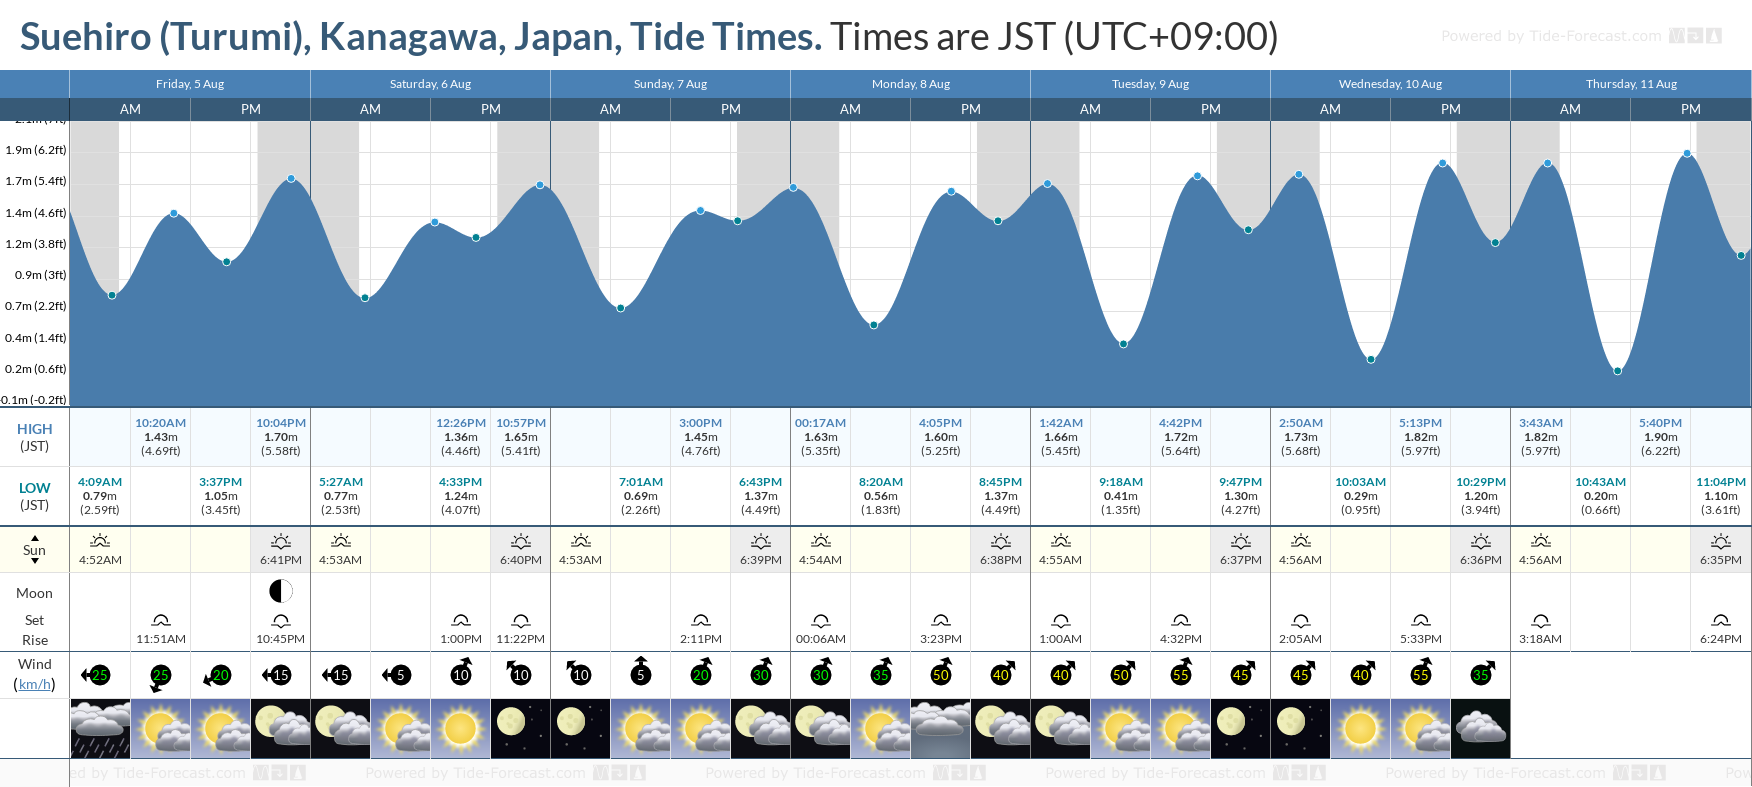 Suehiro (Turumi), Kanagawa, Japan Tide Chart including high and low tide tide times for the next 7 days